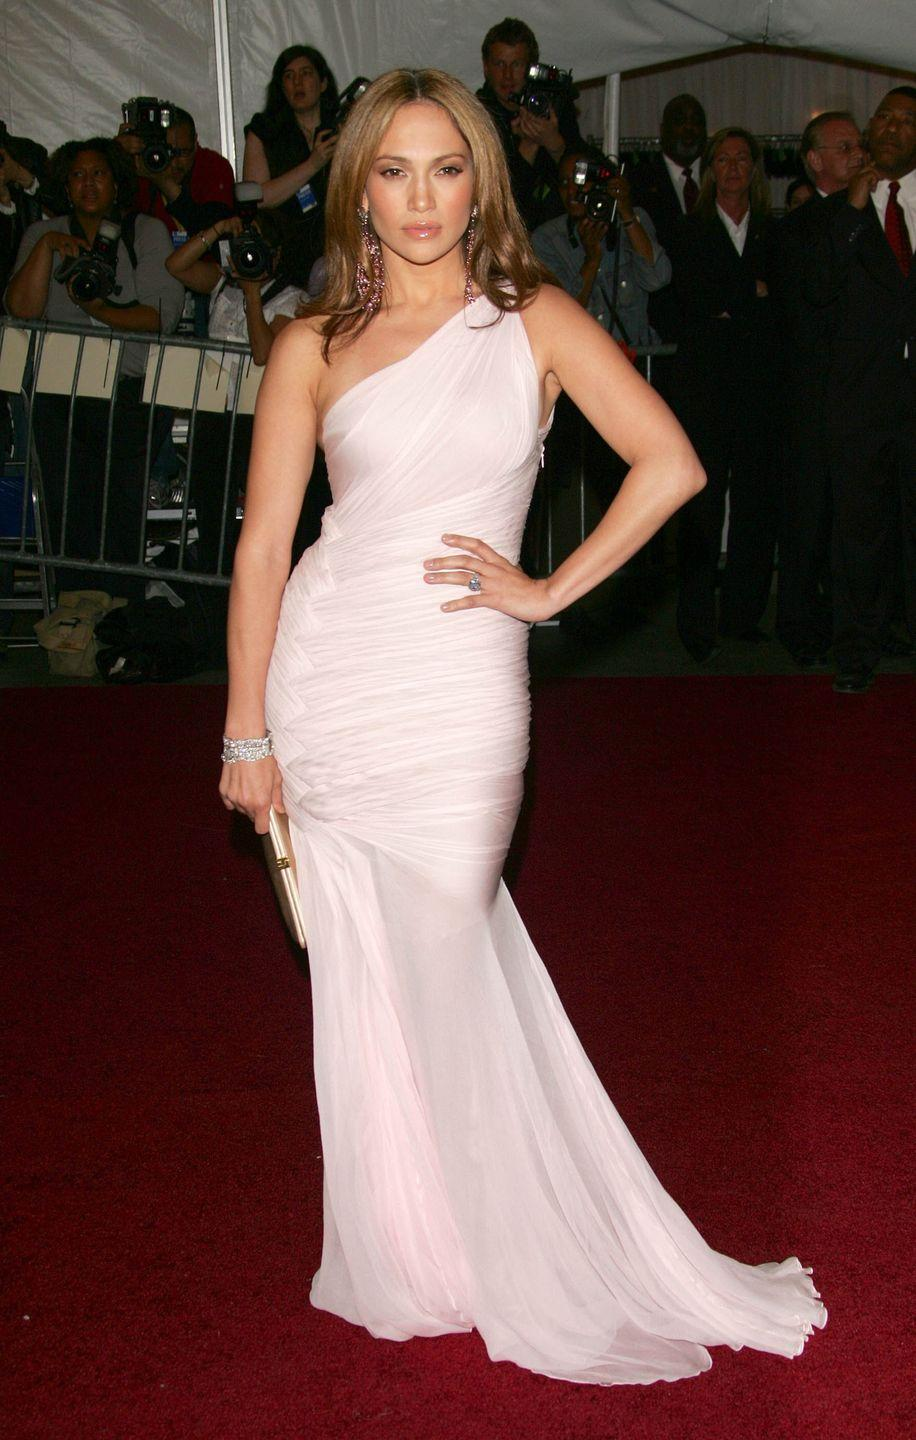 <p>In a one-shouldered chiffon dress at the Met Gala. </p>